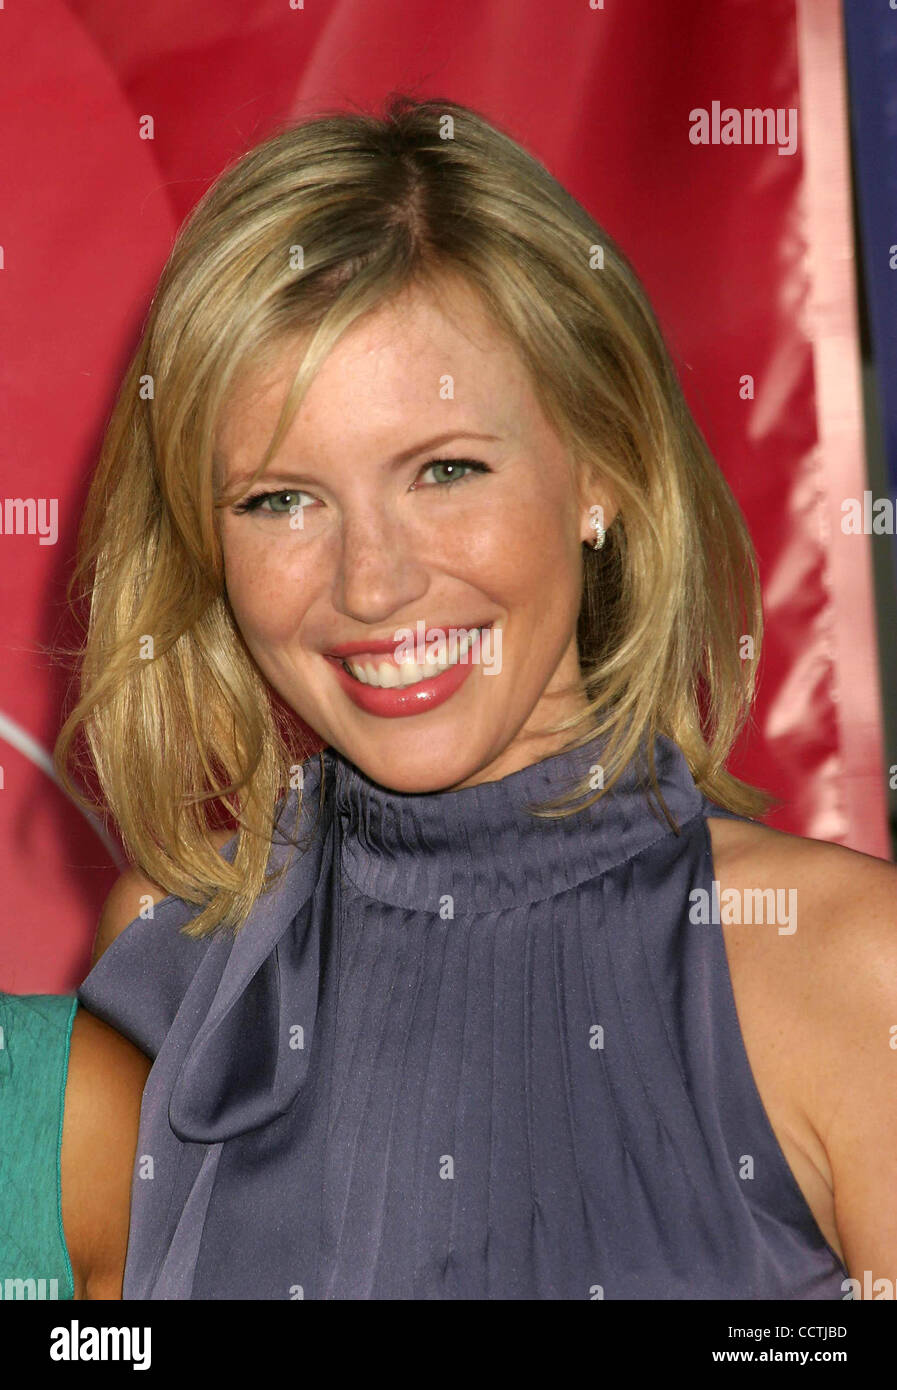 July 11, 2004 - Hollywood, California, U.S. - K38163EG.NBC ALL-STAR PARTY FOR SUMMER PRESS TOUR AT UNIVERSAL STUDIOS Stock Photo